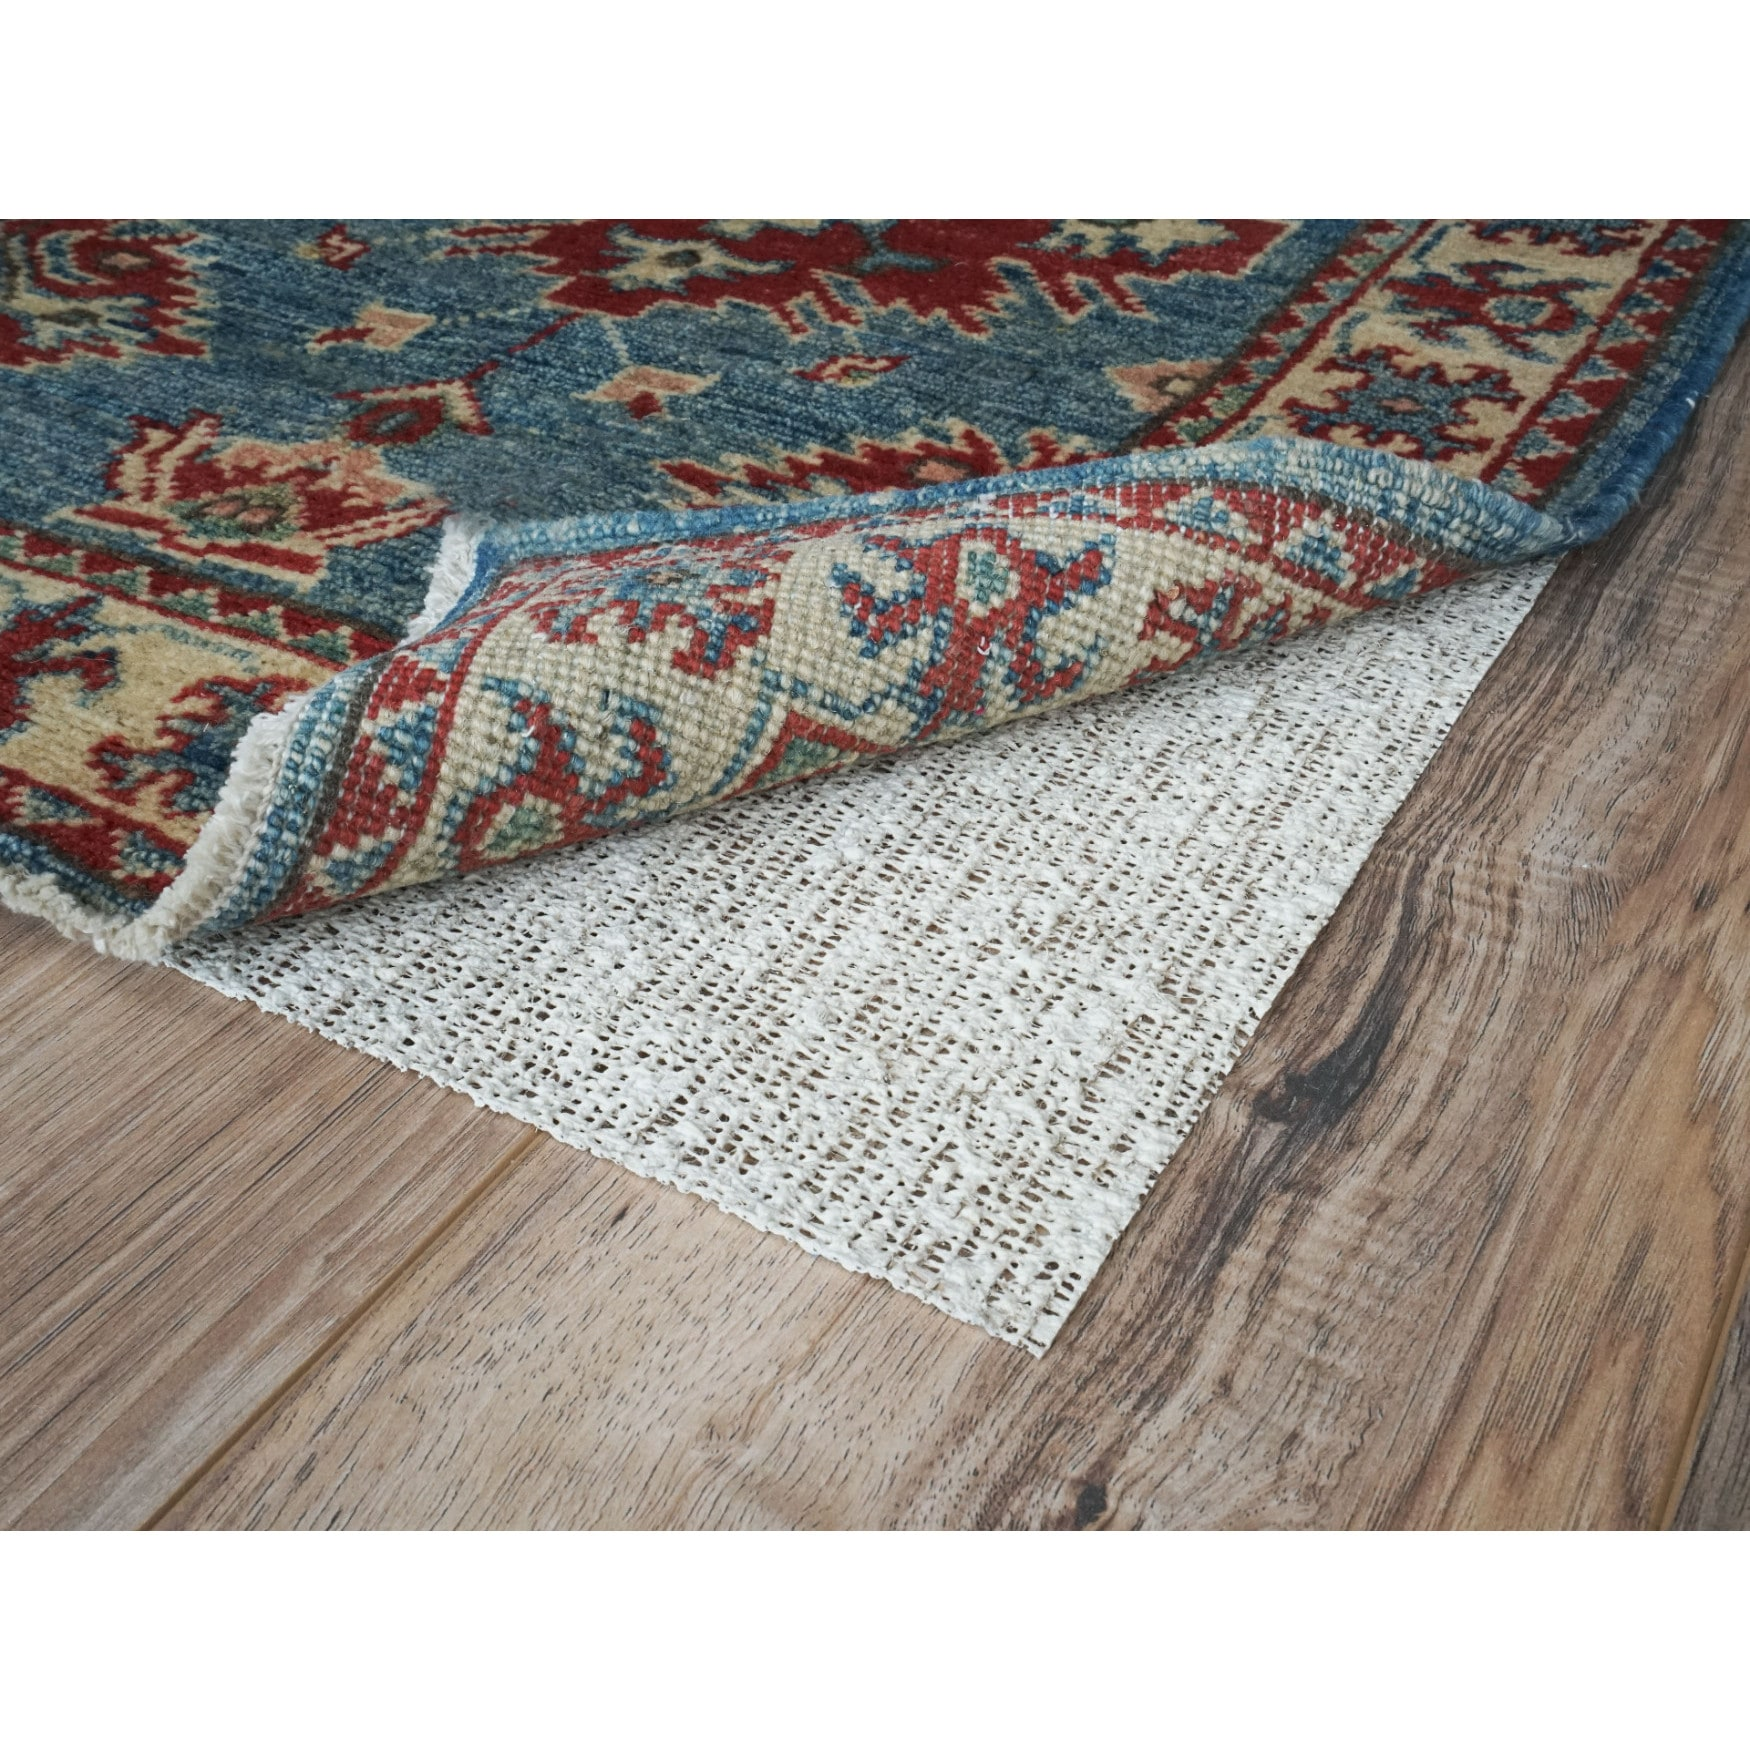 Eco Weave Friendly Jute Rubber Non Slip Rug Pad Beige Free Shipping On Orders Over 45 16536126